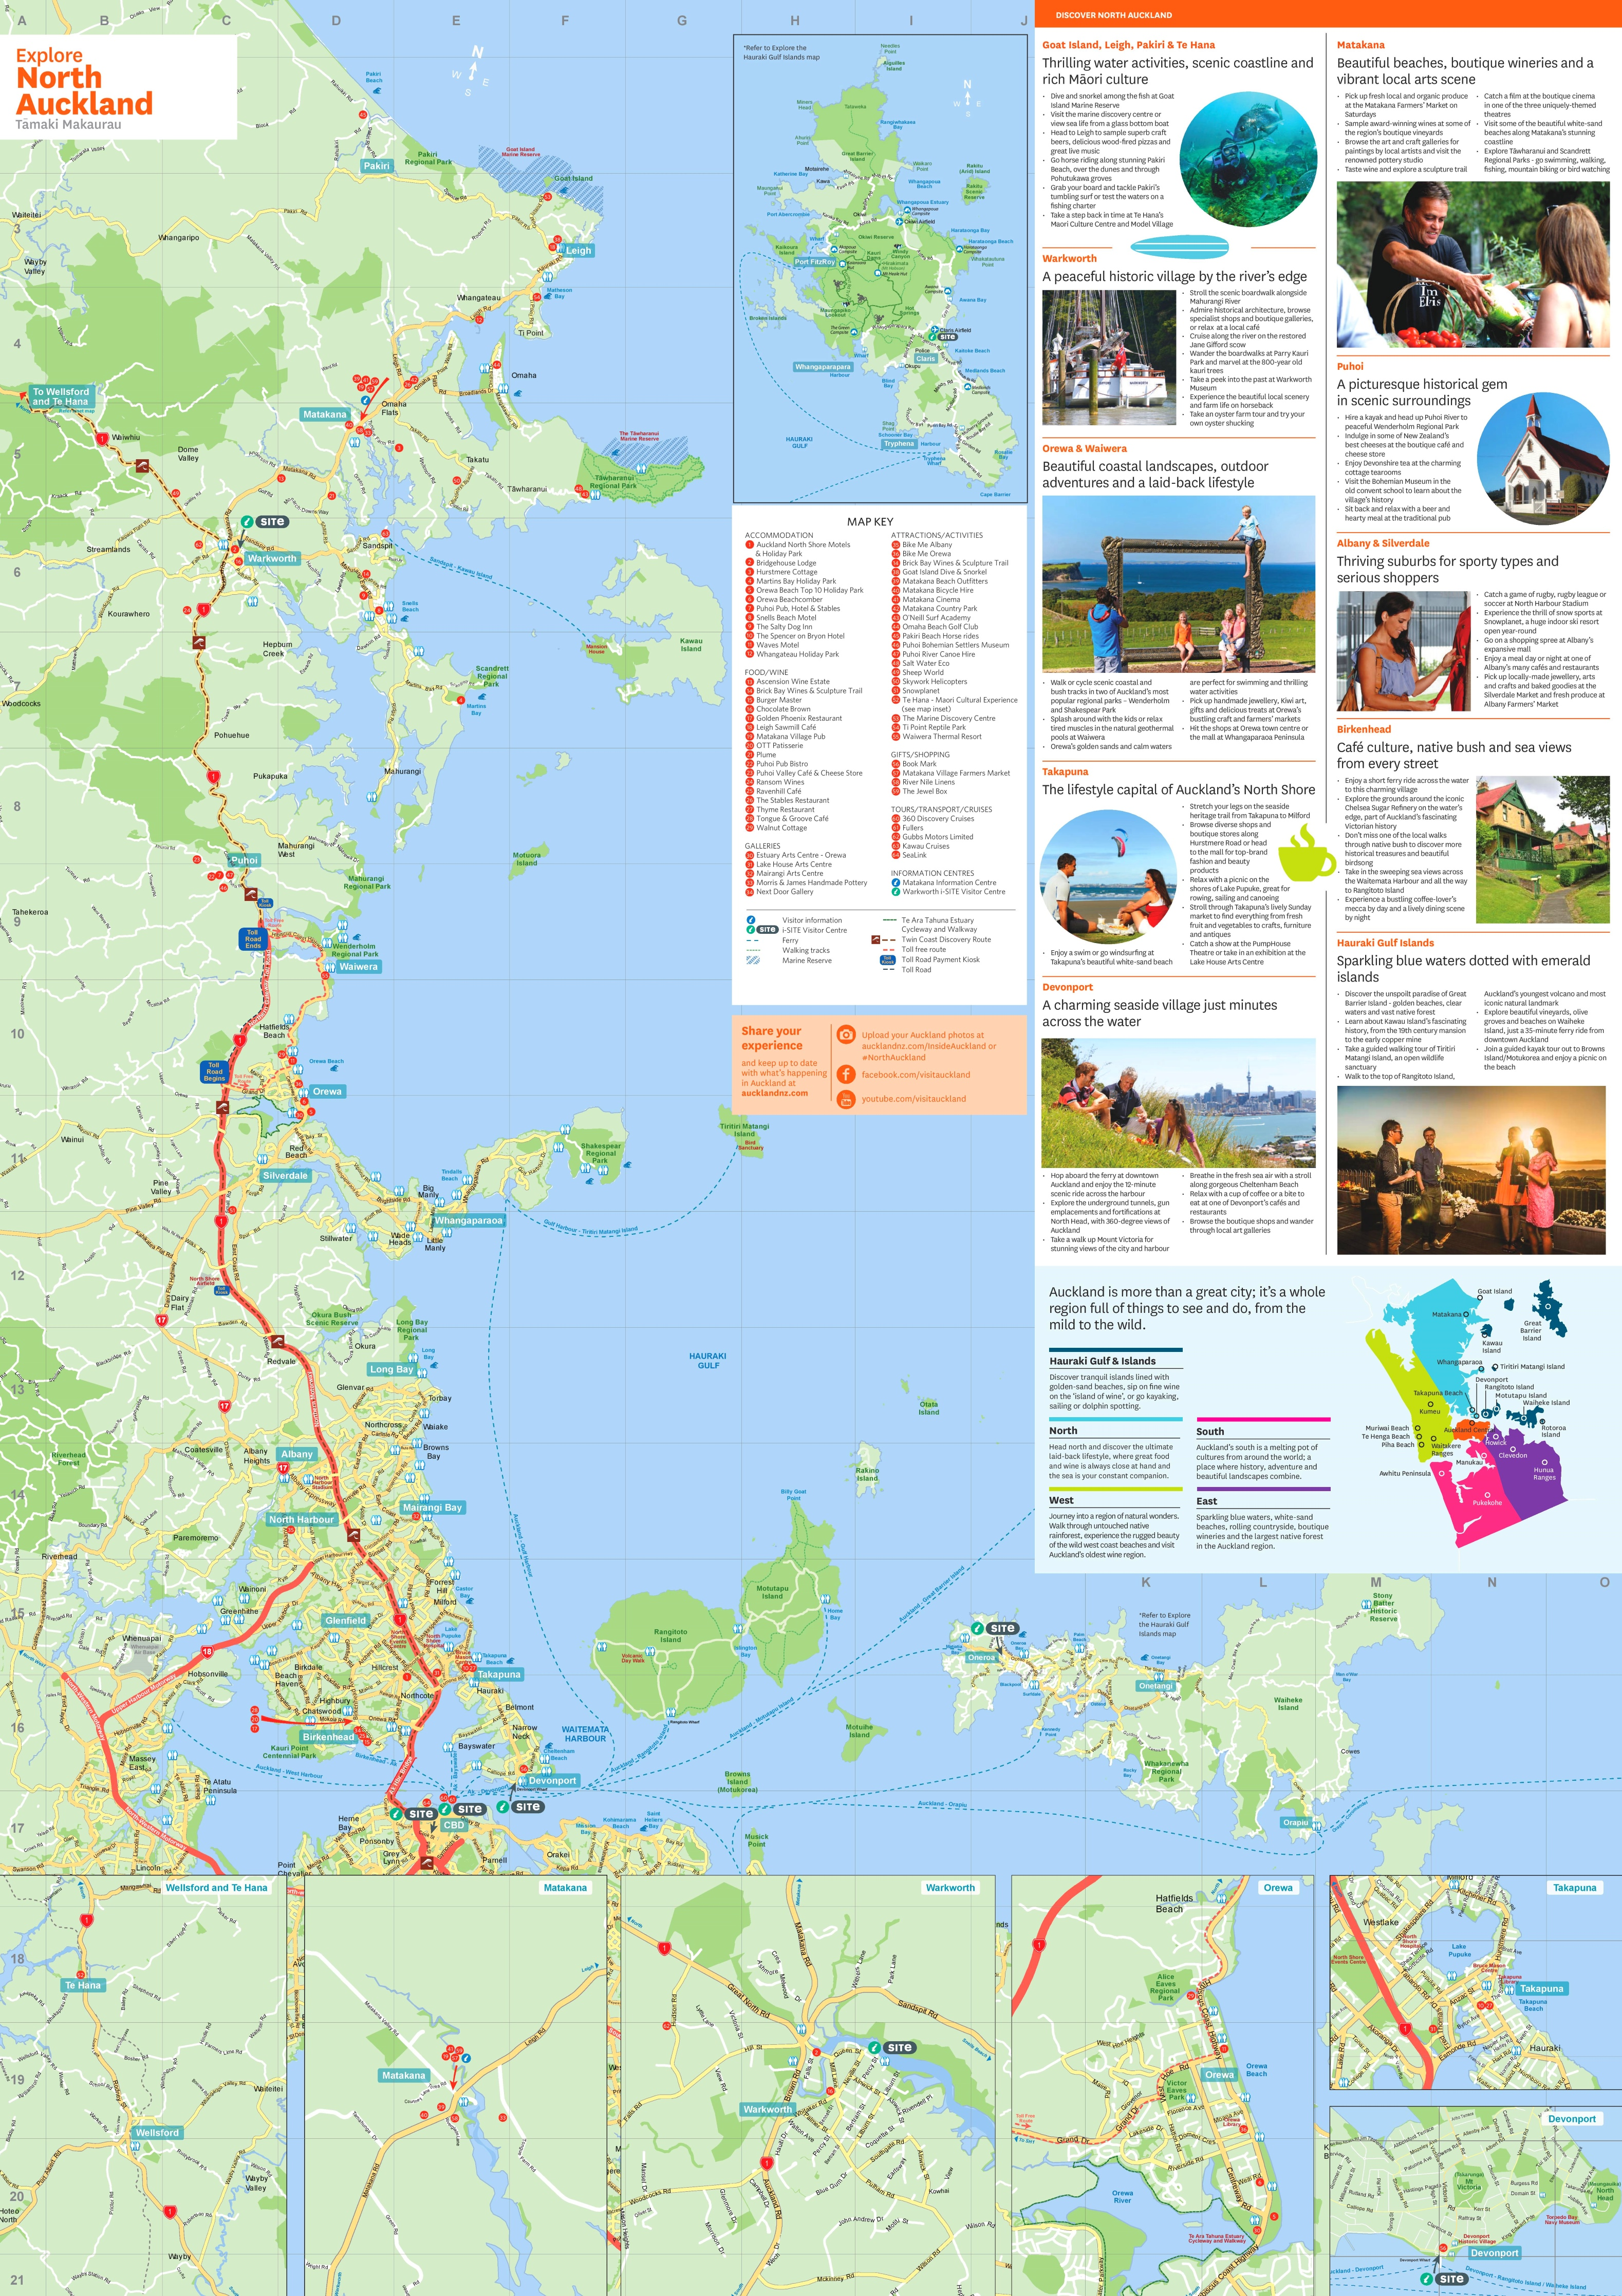 North Auckland tourist map